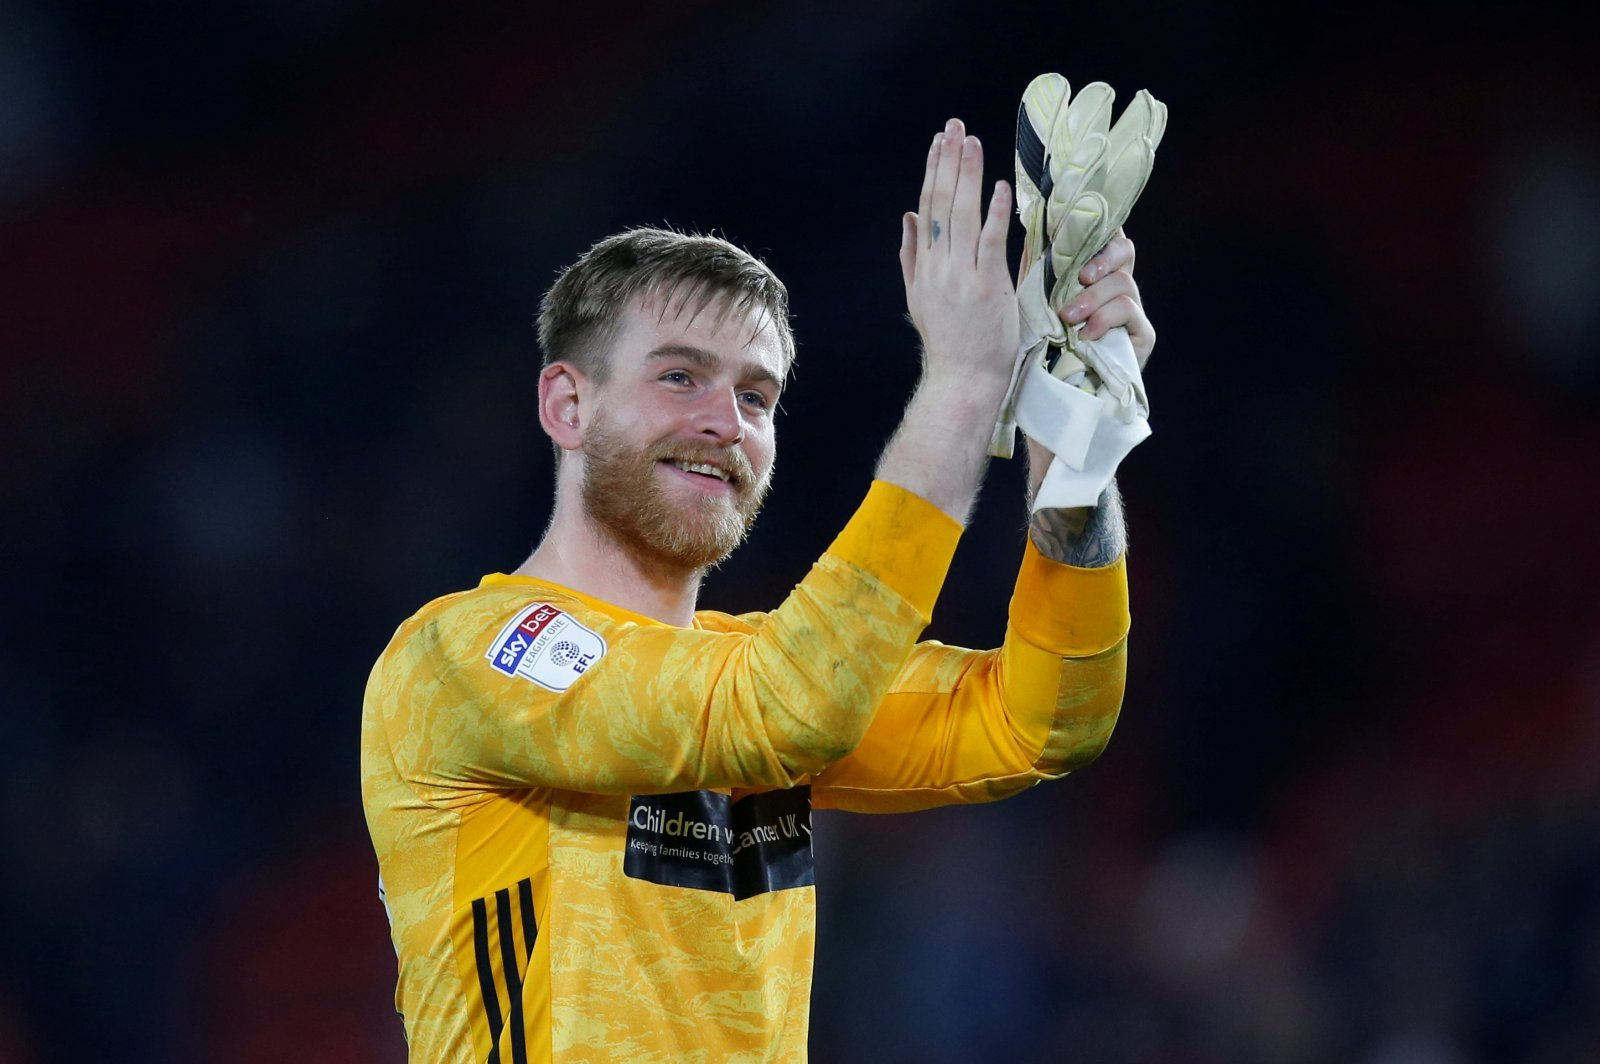 Sunderland: Many fans felt for Lee Burge after he was left on the bench